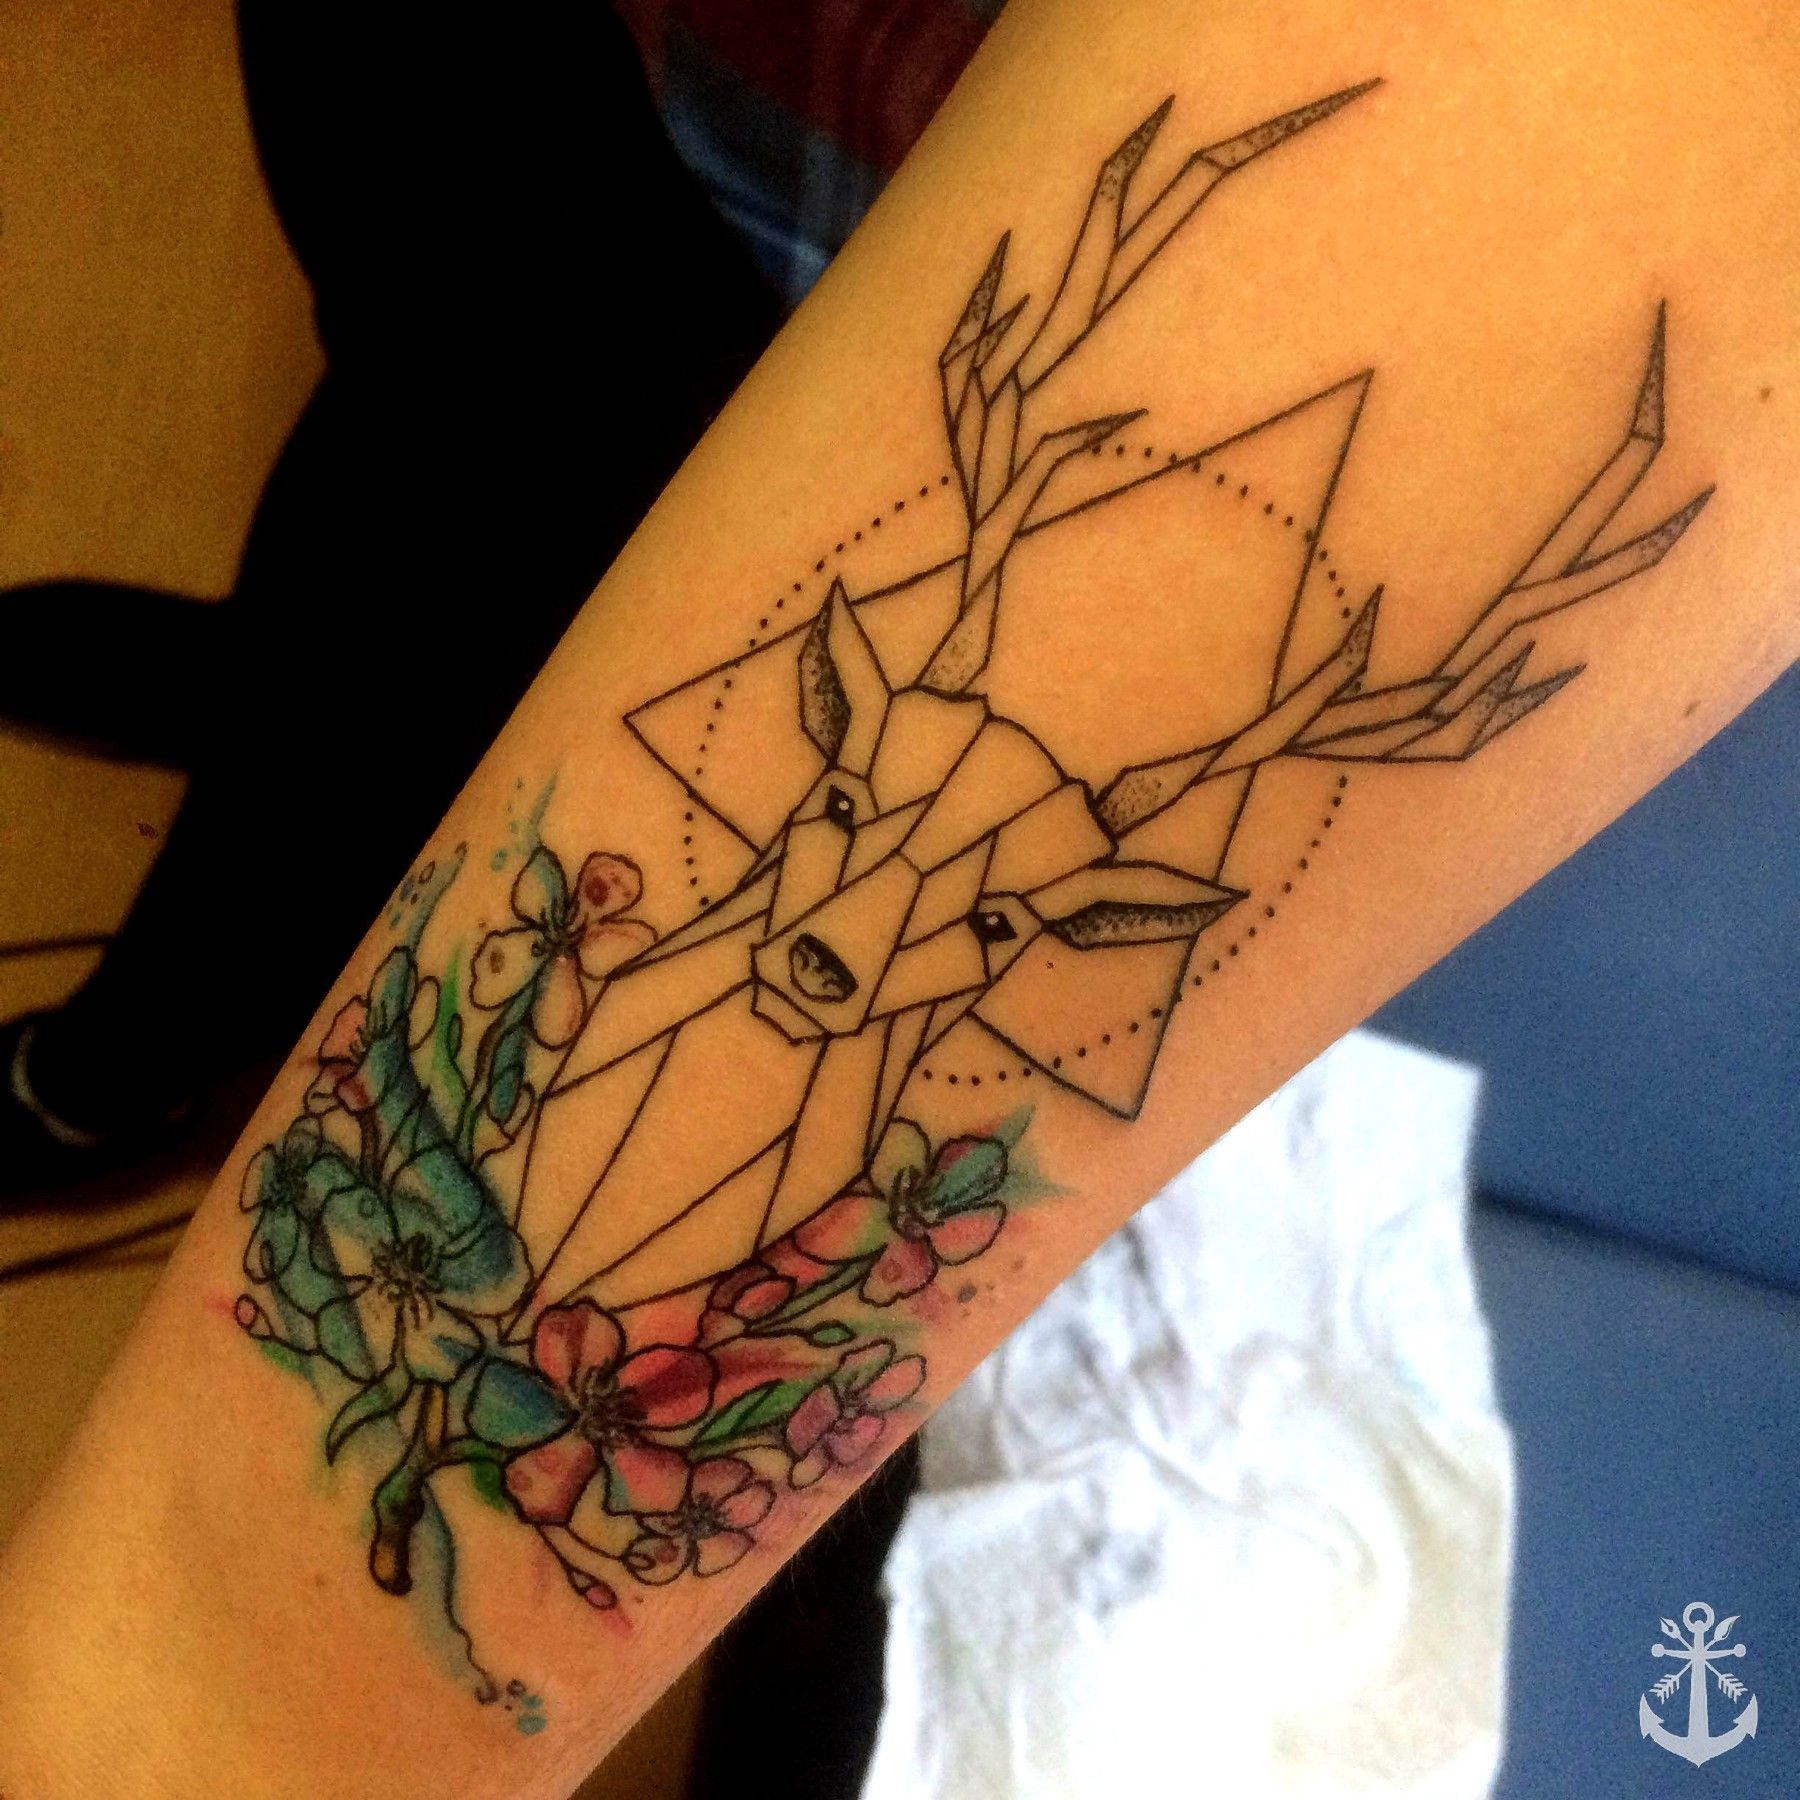 Deer Tattoo Geometric Tattoo Watercolor Tattoo Tatuaje Ciervo